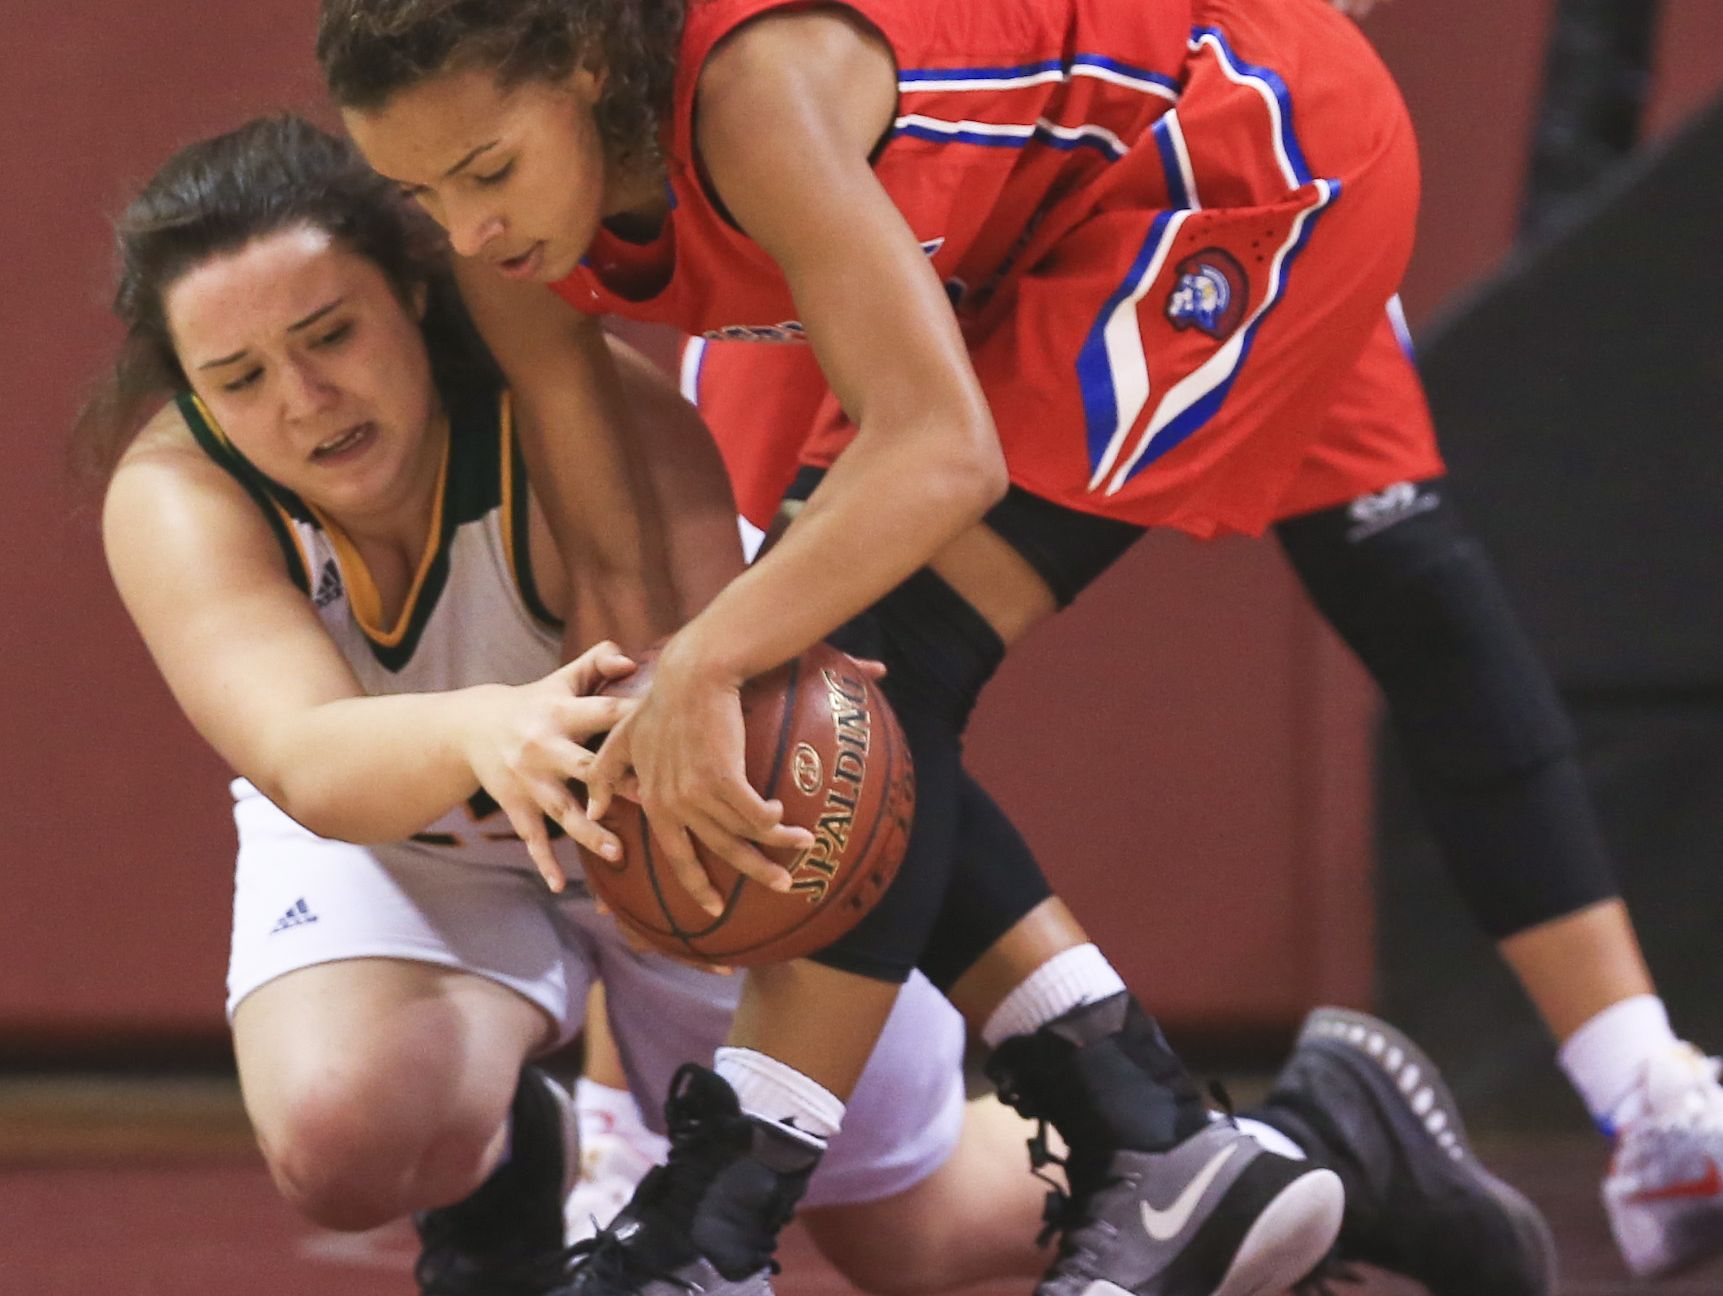 CAL's Shelby Calhoun tussles with North Bullitt's Caroline Janes in the first game of the Girls' LIT at Bellarmine University. The Lady Centurions beat the Lady Eagles 57-45.